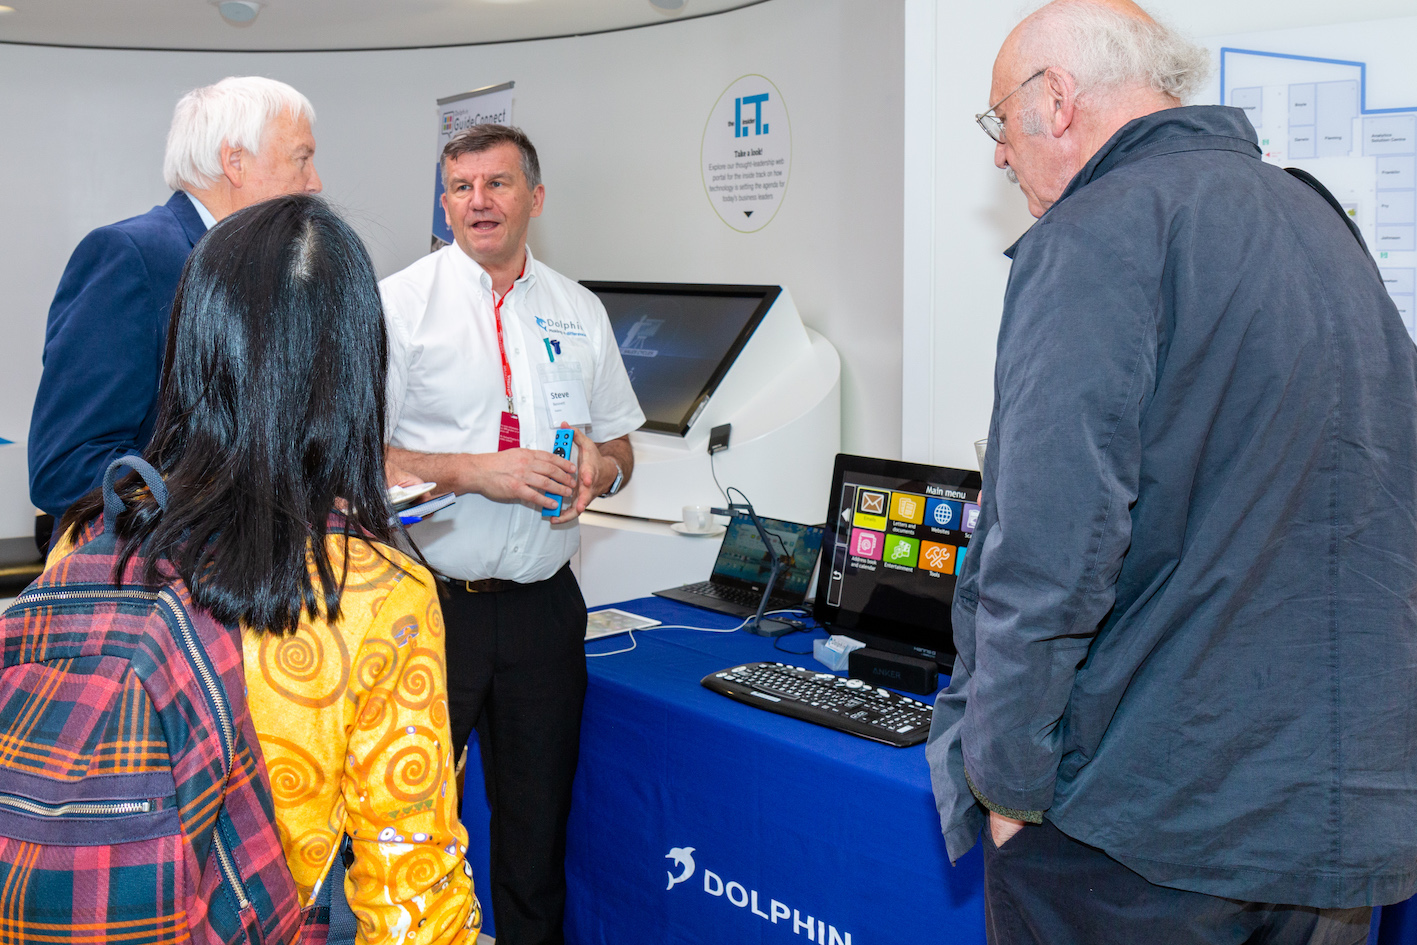 A representative from Dophin demonstrating their assistive tech to event attendees